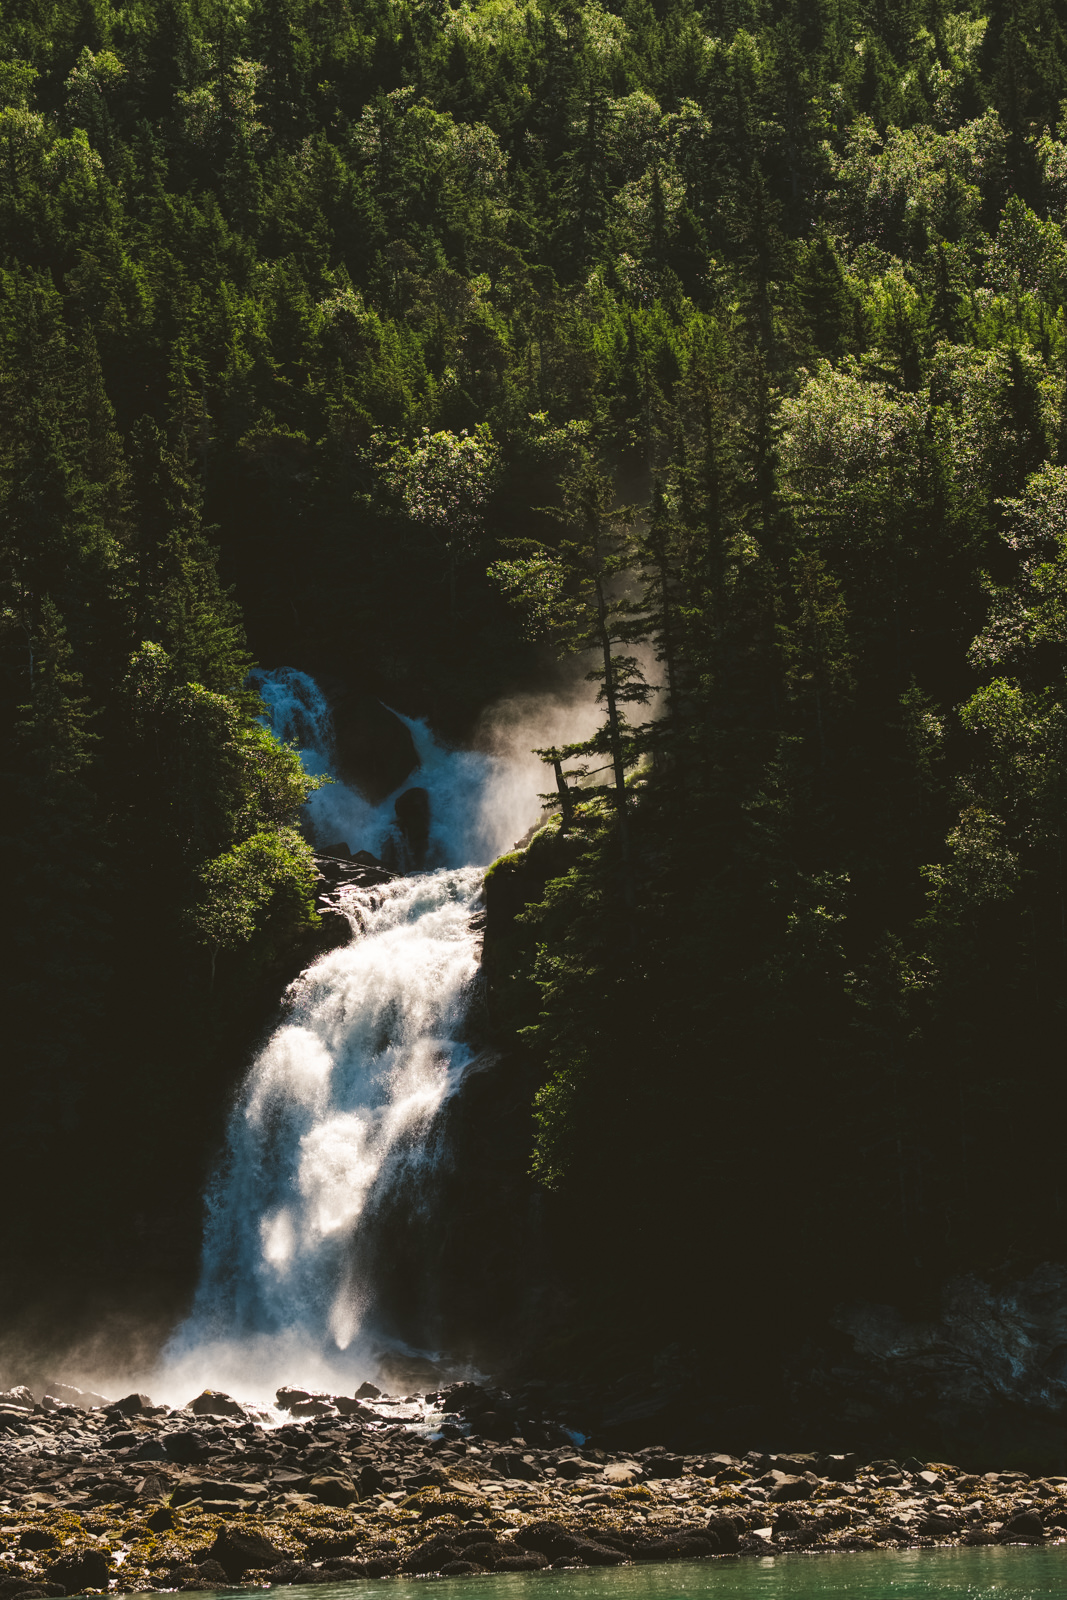 waterfall and forest in alaska captured by destination photographers